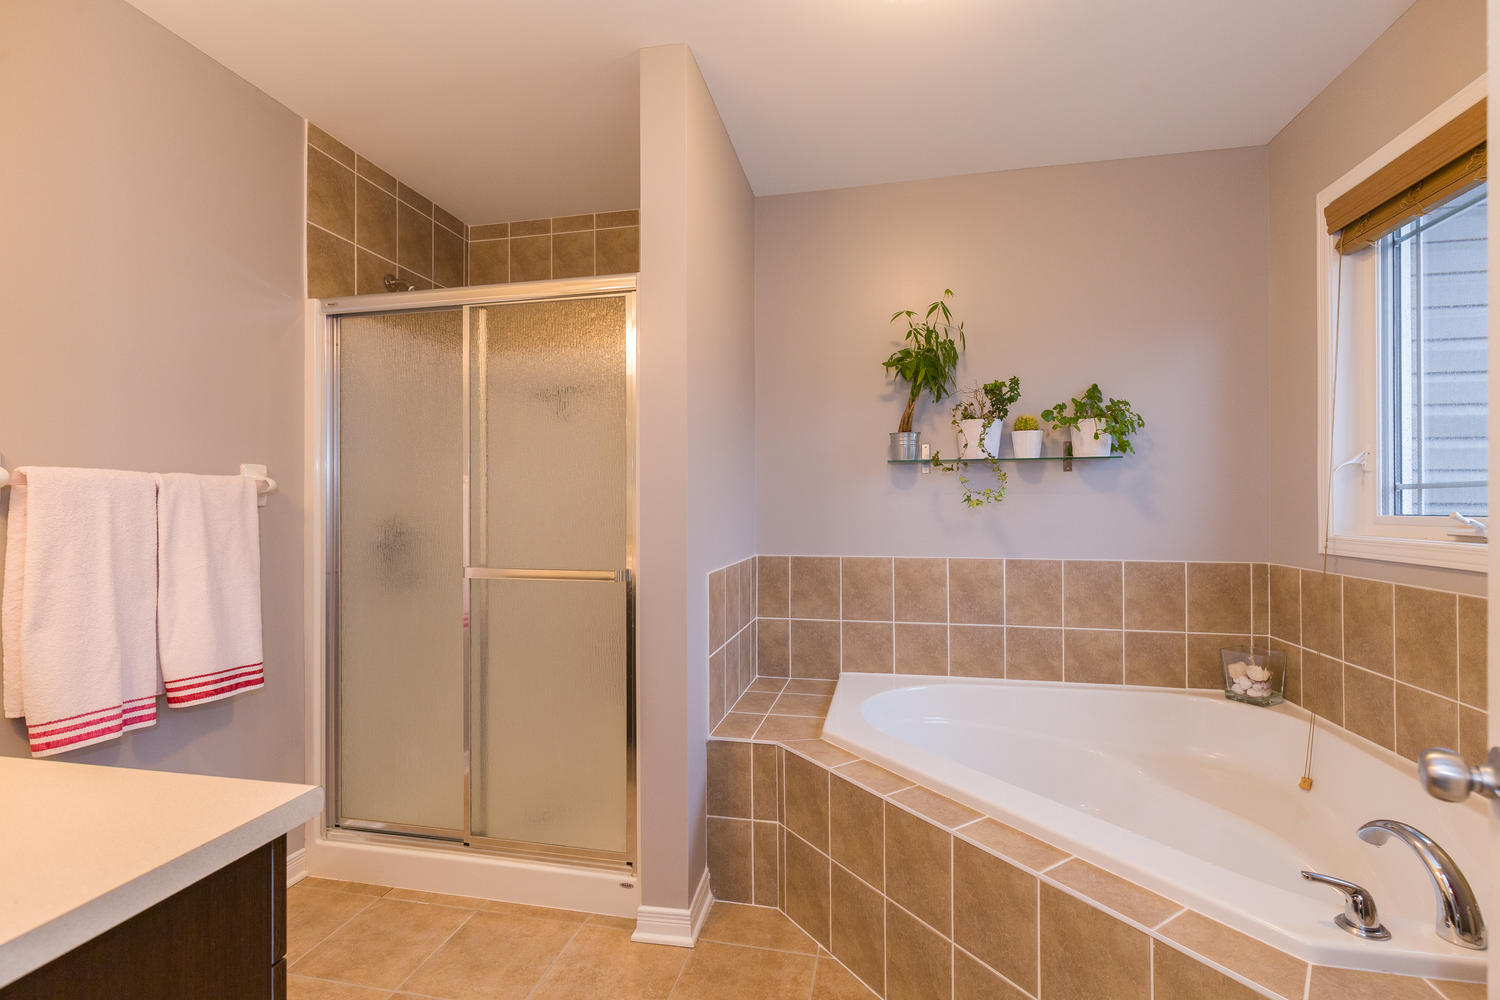 Beautiful ensuite bathroom with stand up shower and large corner soaker tub.